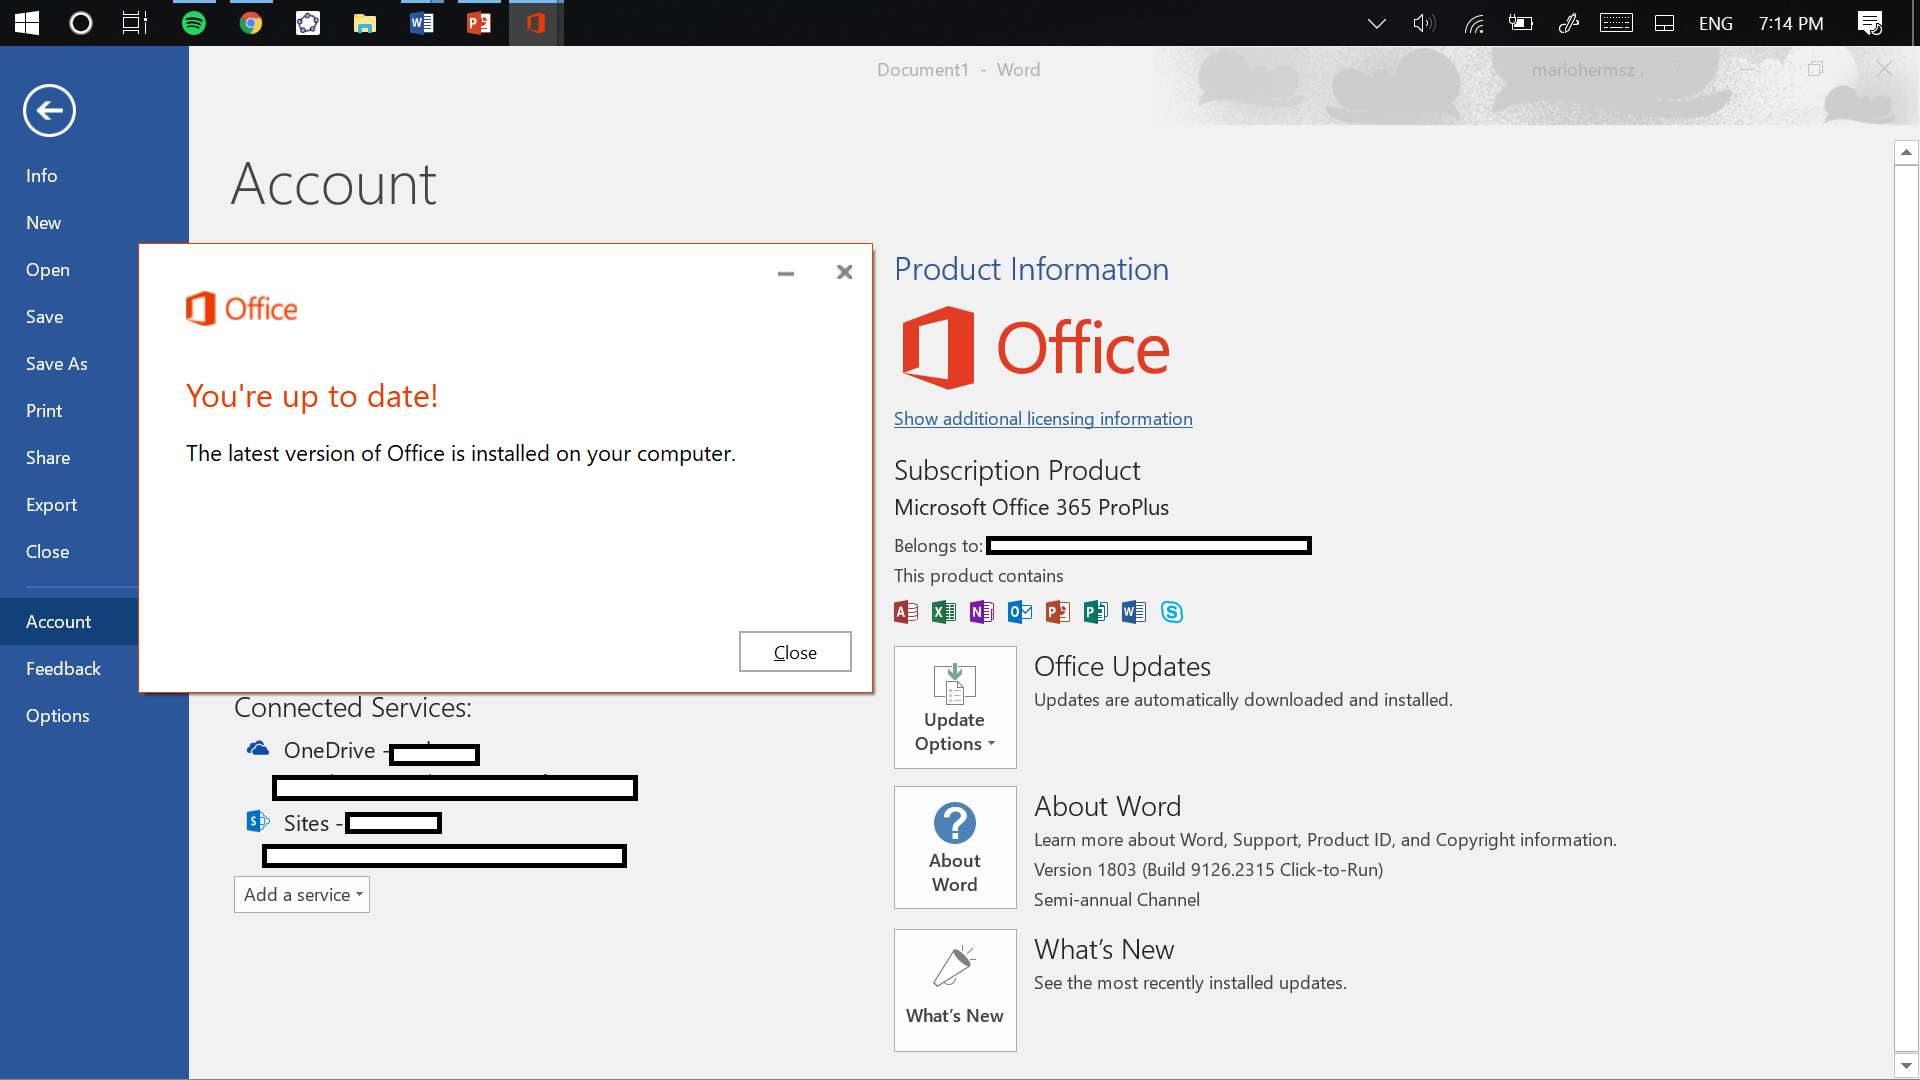 Microsoft Office Upgrade >> I Can T Update My Office 2016 App To Office 2019 But I M